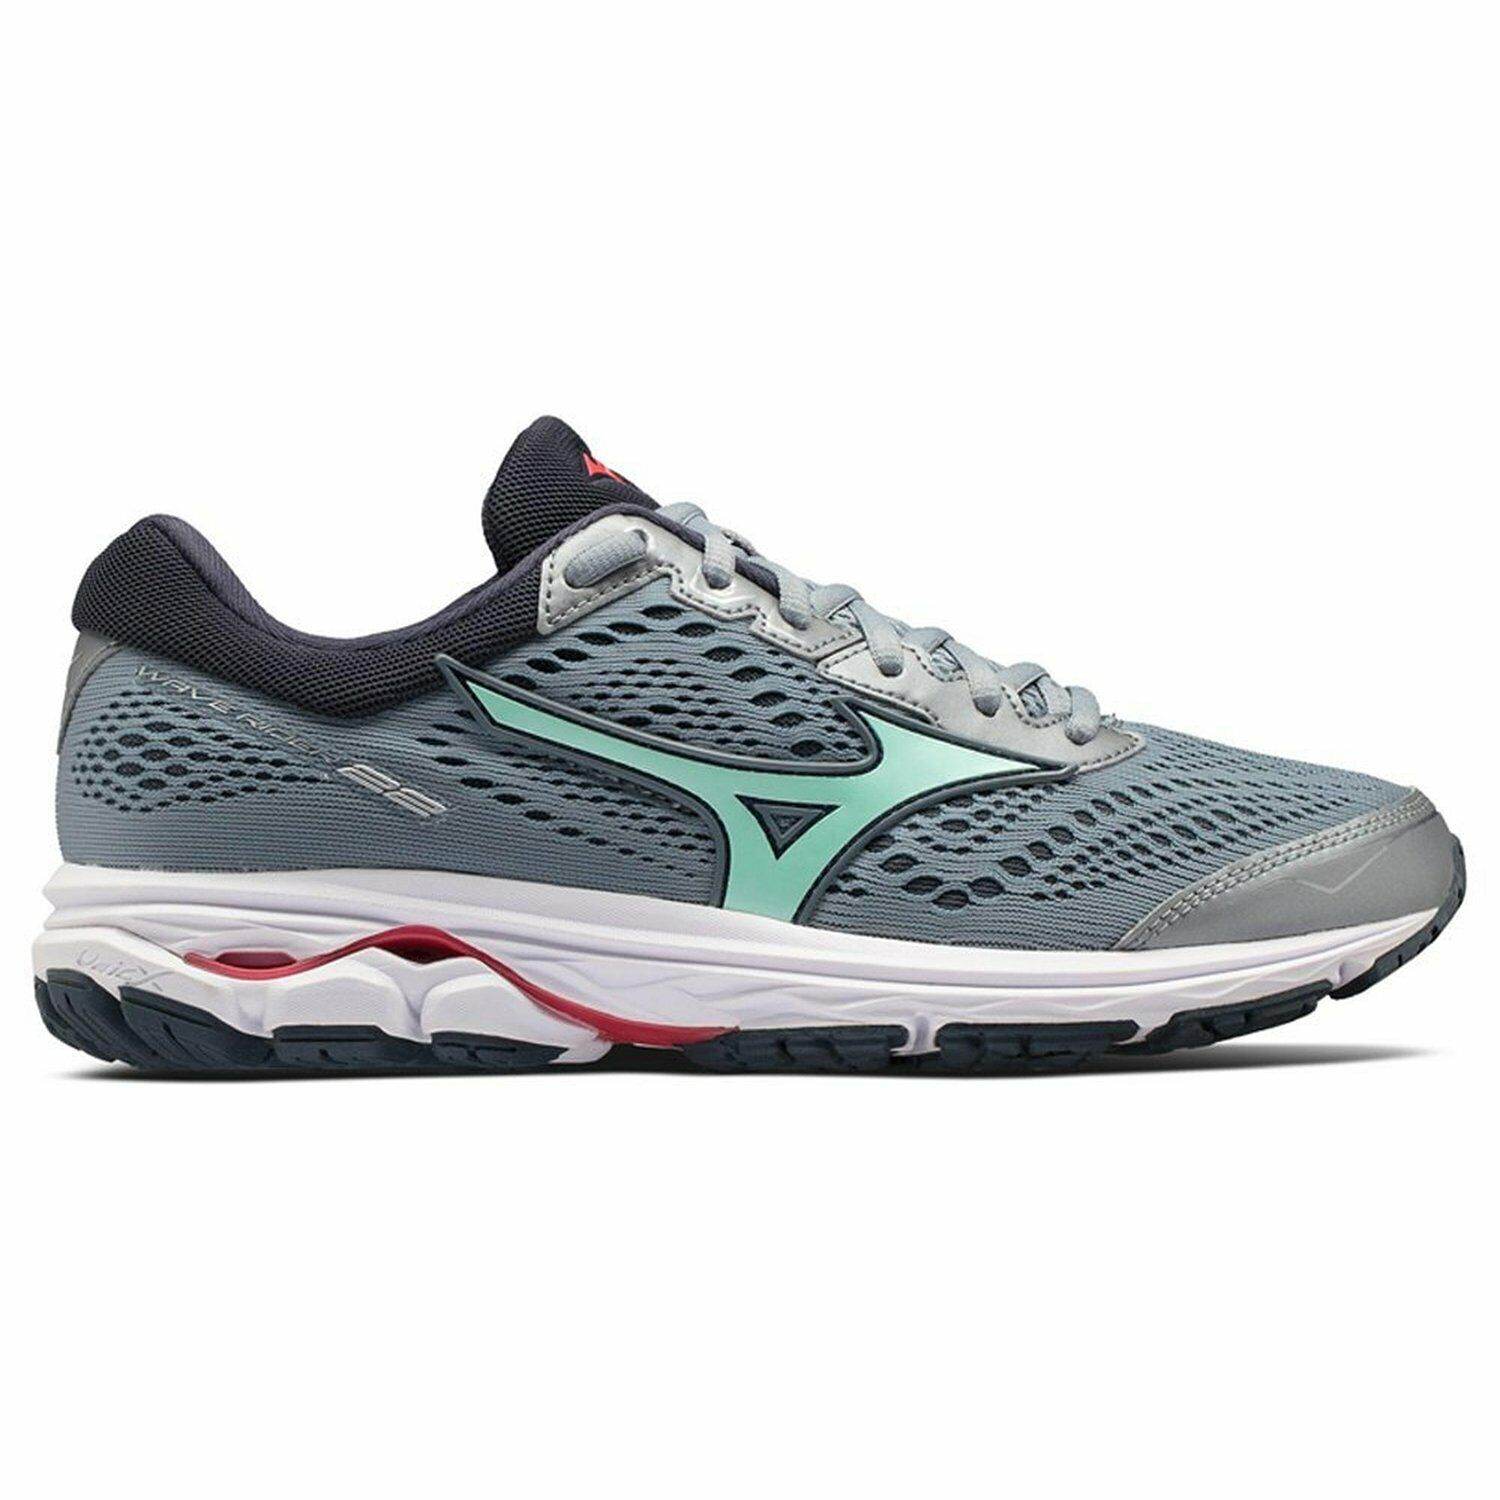 mizuno mens running shoes size 9 years old kg women's